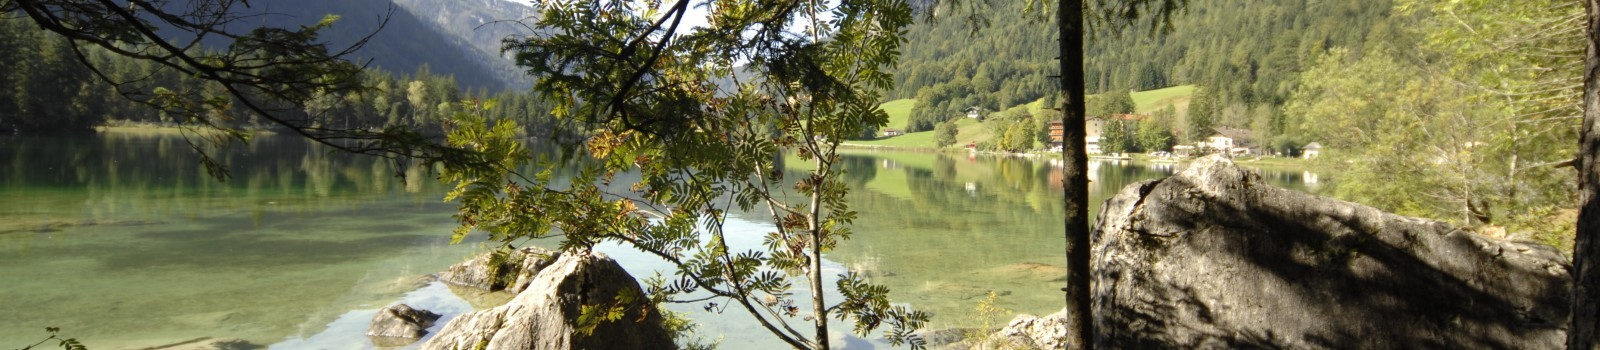 Hintersee in der Ramsau